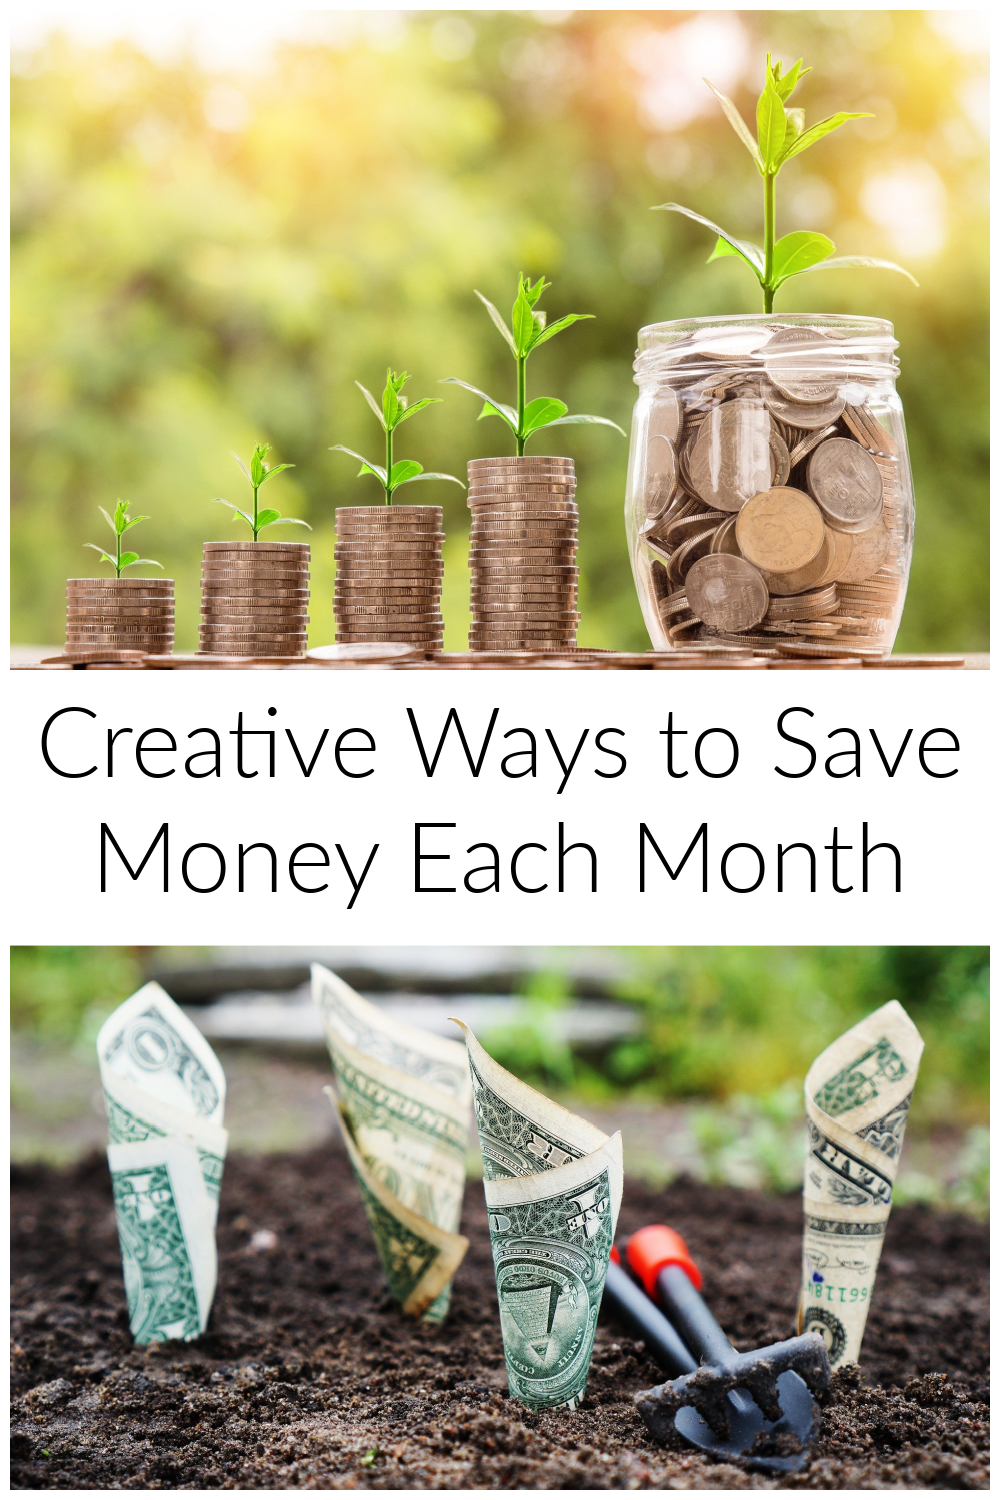 5 Creative Ways to Save Money Each Month